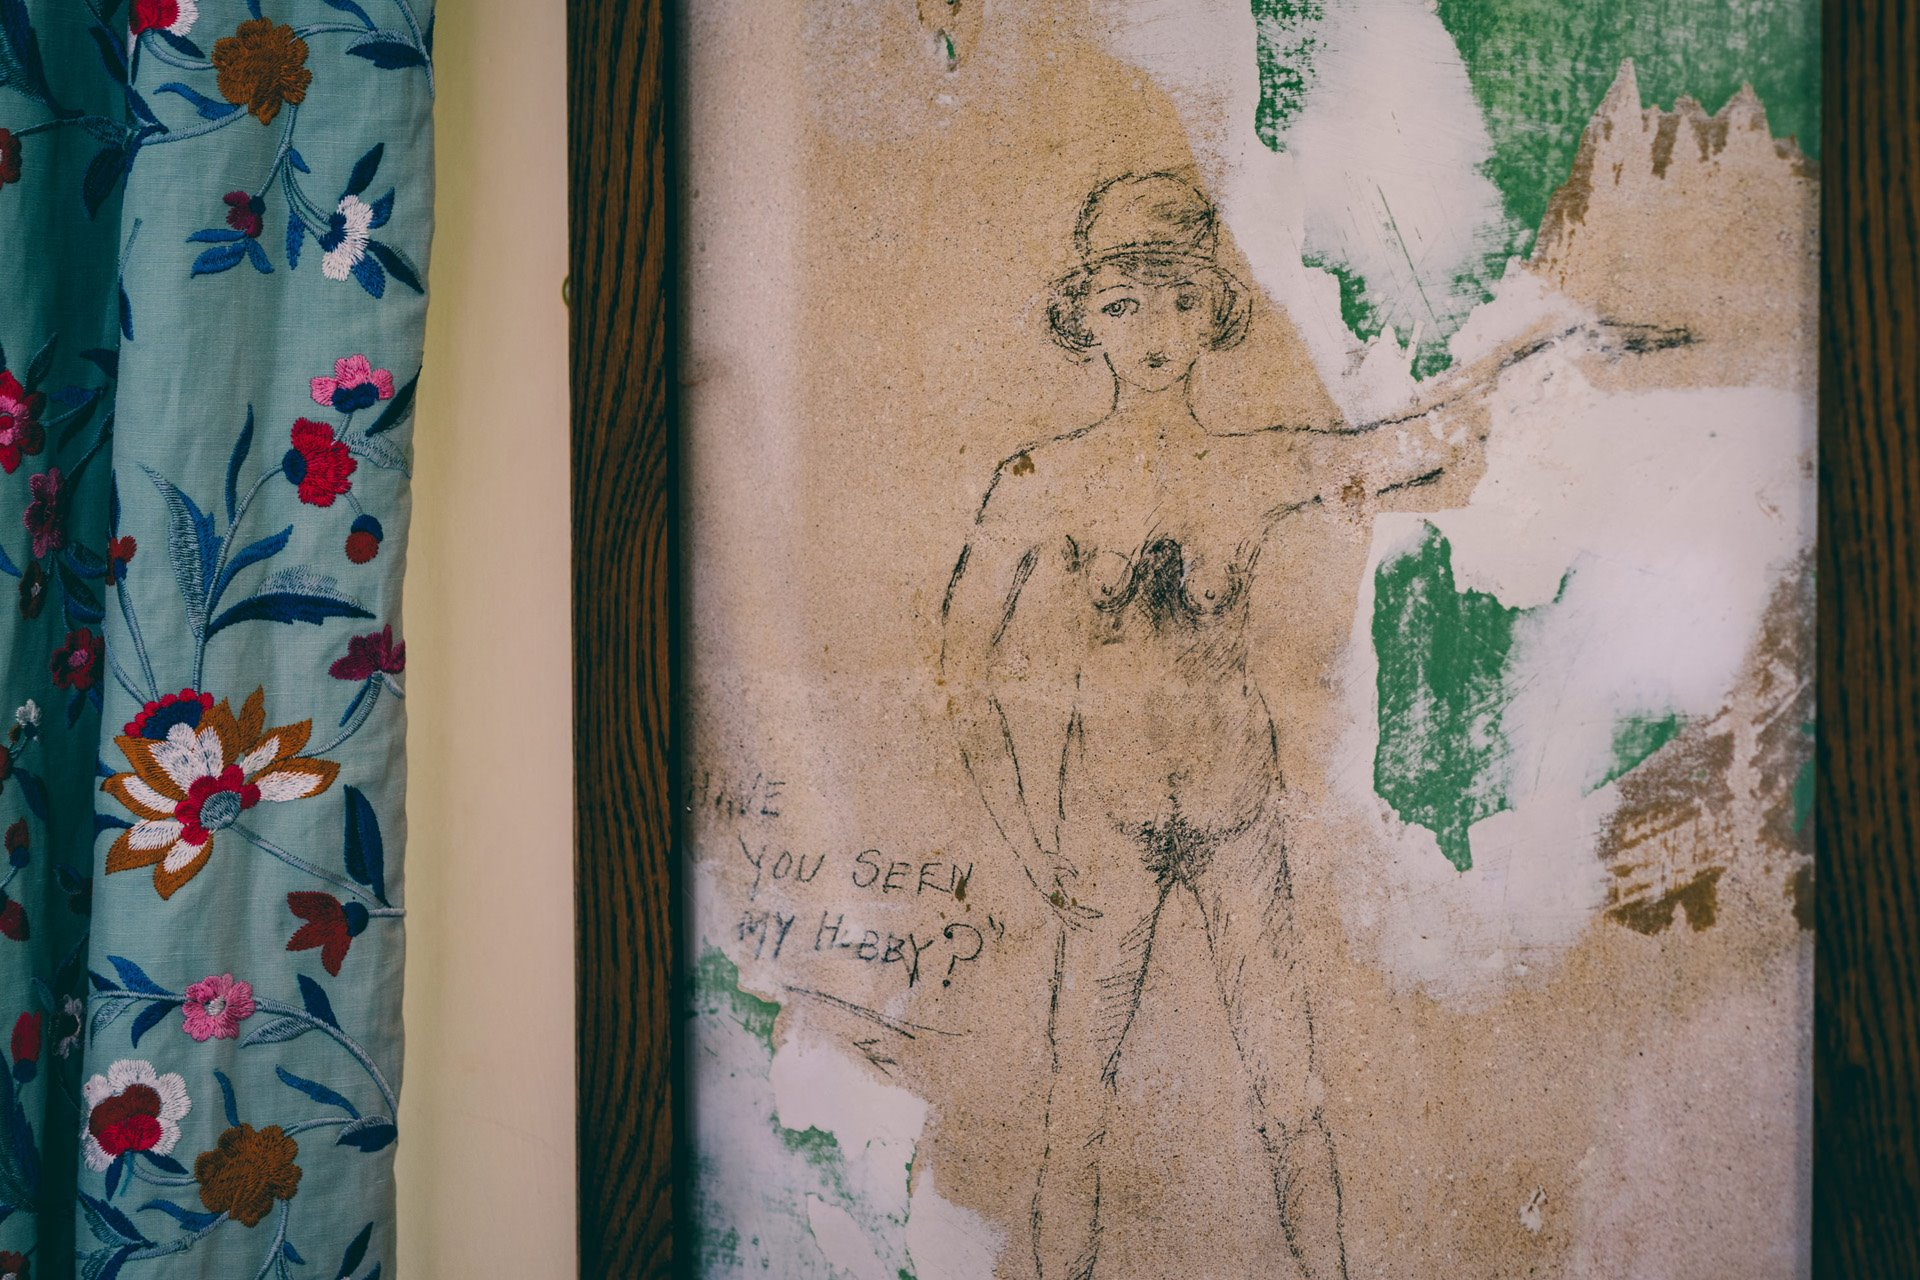 Ancient graffiti of a nude woman found in one of the bedrooms underneath the wallpaper of a stately home wedding venue